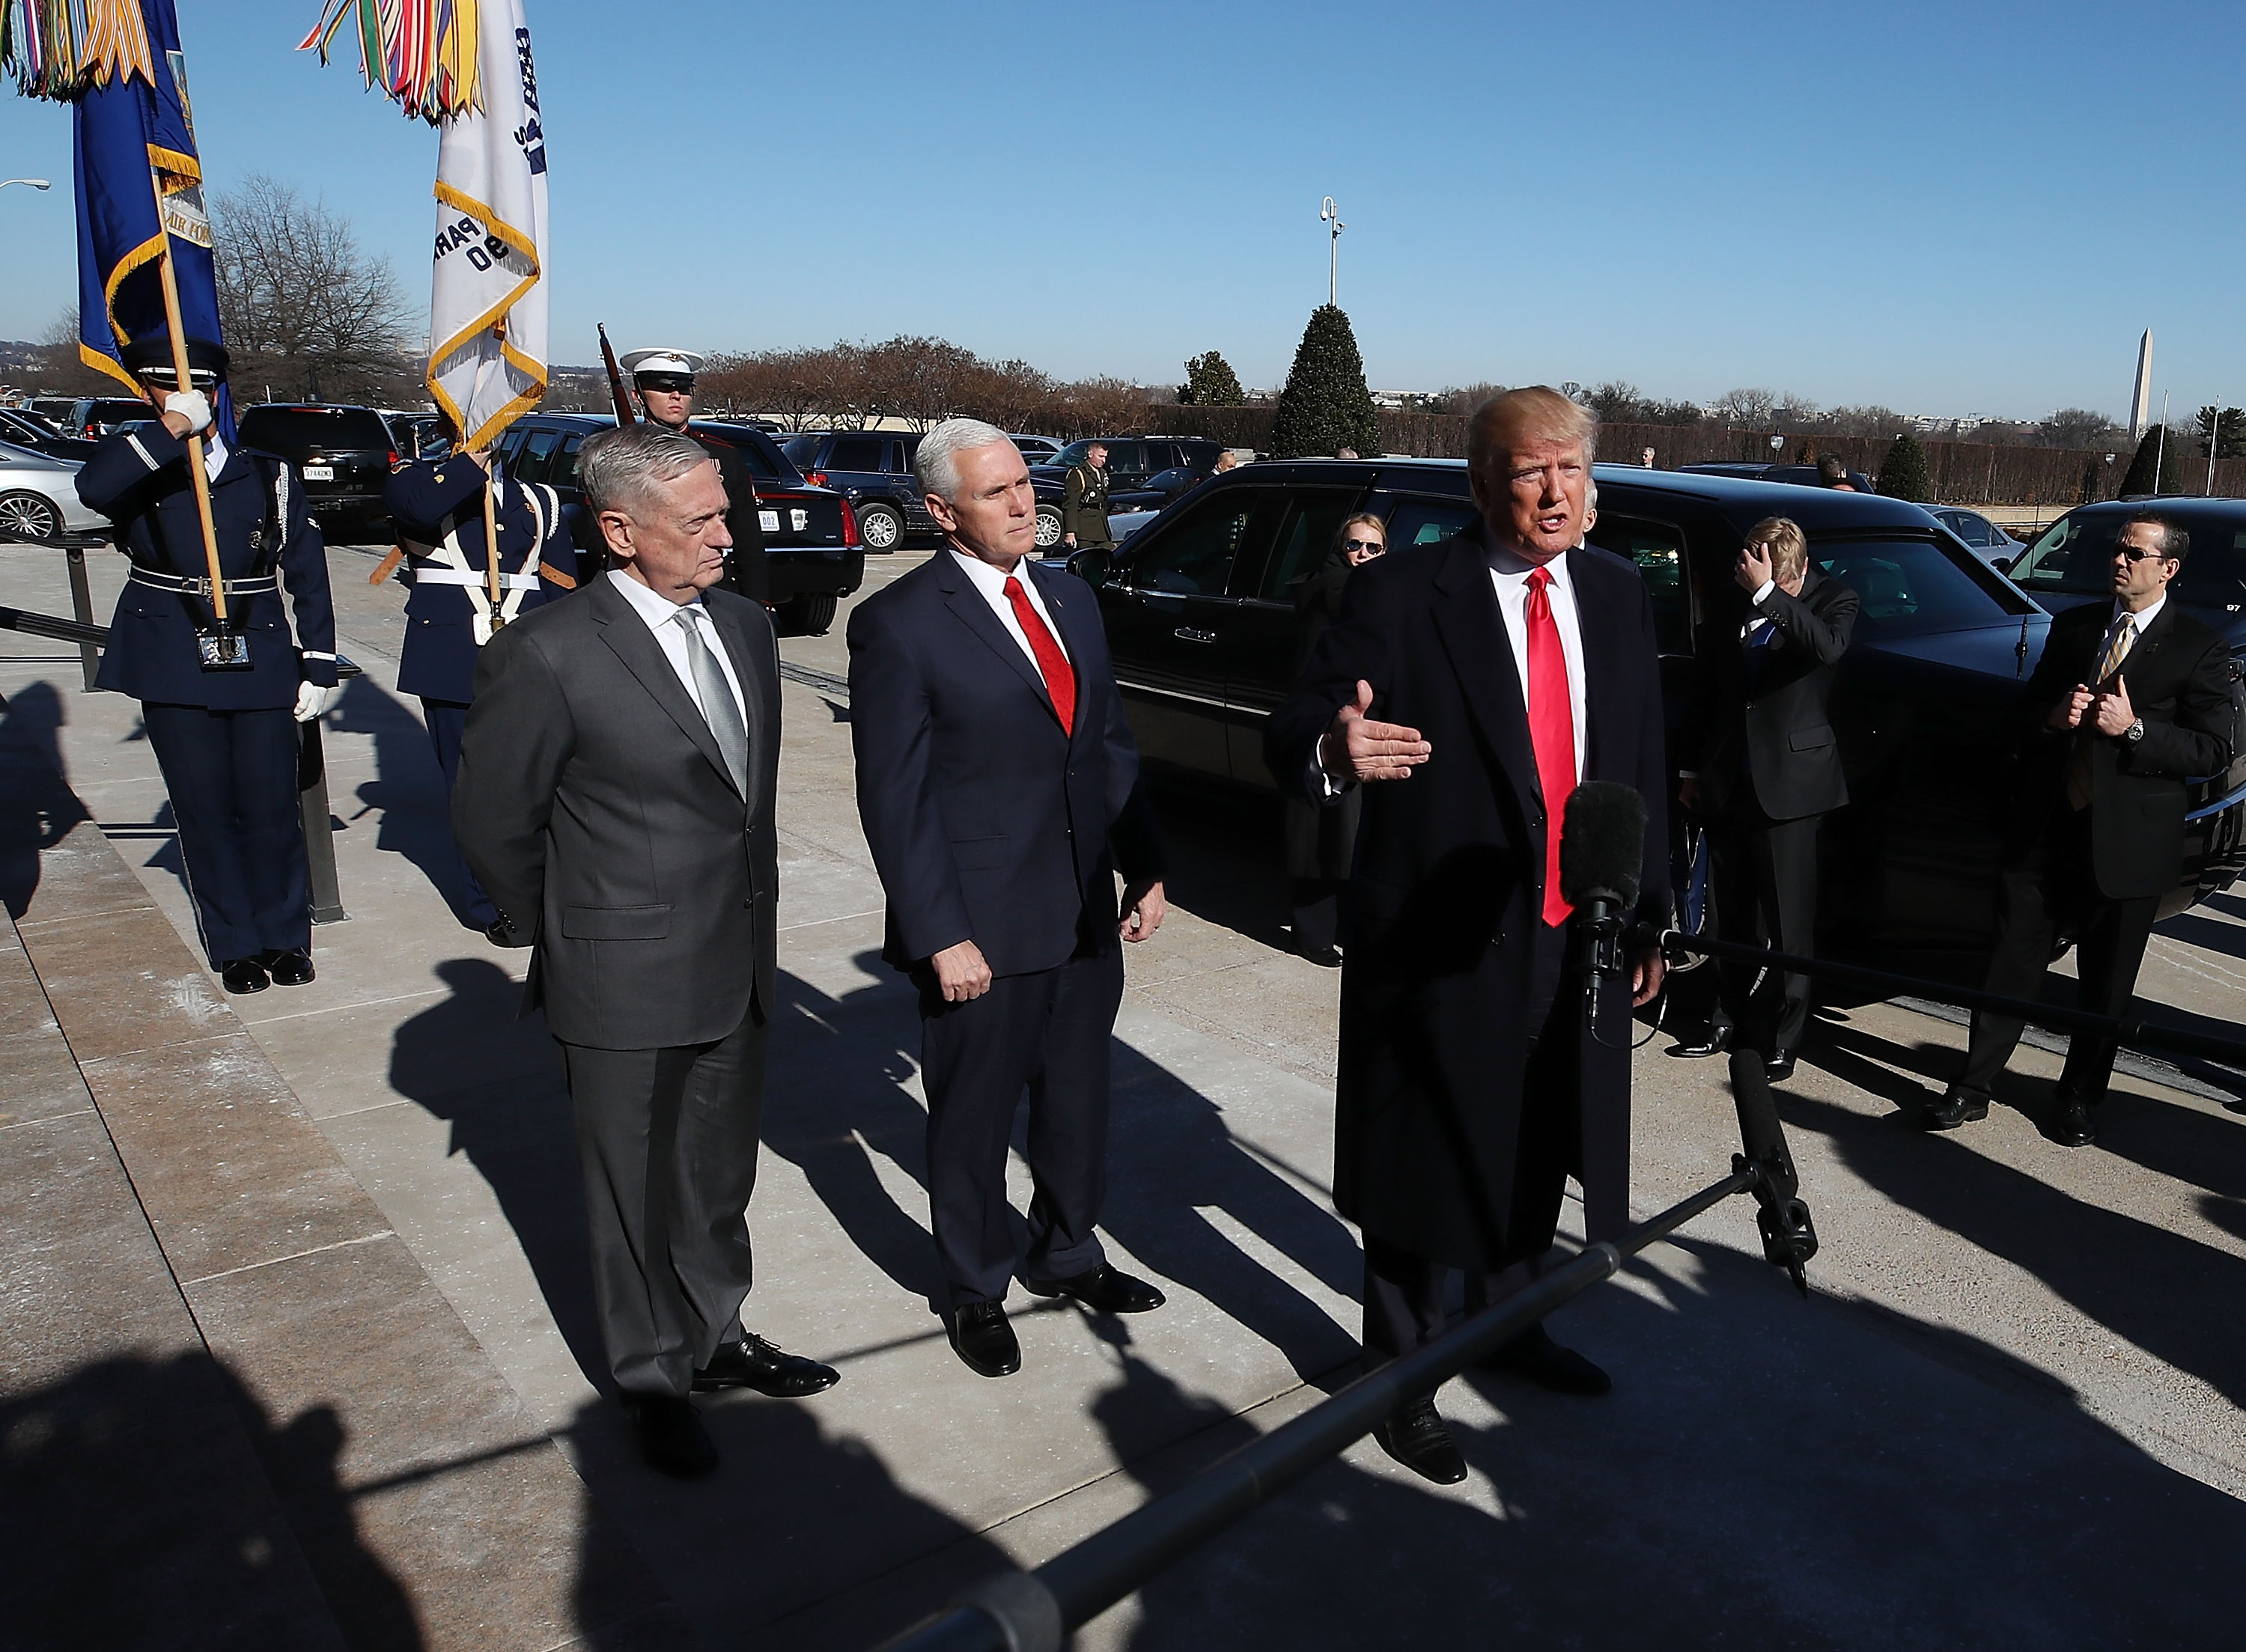 U.S. President Donald Trump speaks to the media after arriving for a meeting at the Pentagon, on January 18, 2018 in Arlington, Virginia. Also pictured are Vice President Mike Pence (C), and Defense Secretary Jim Mattis (L).